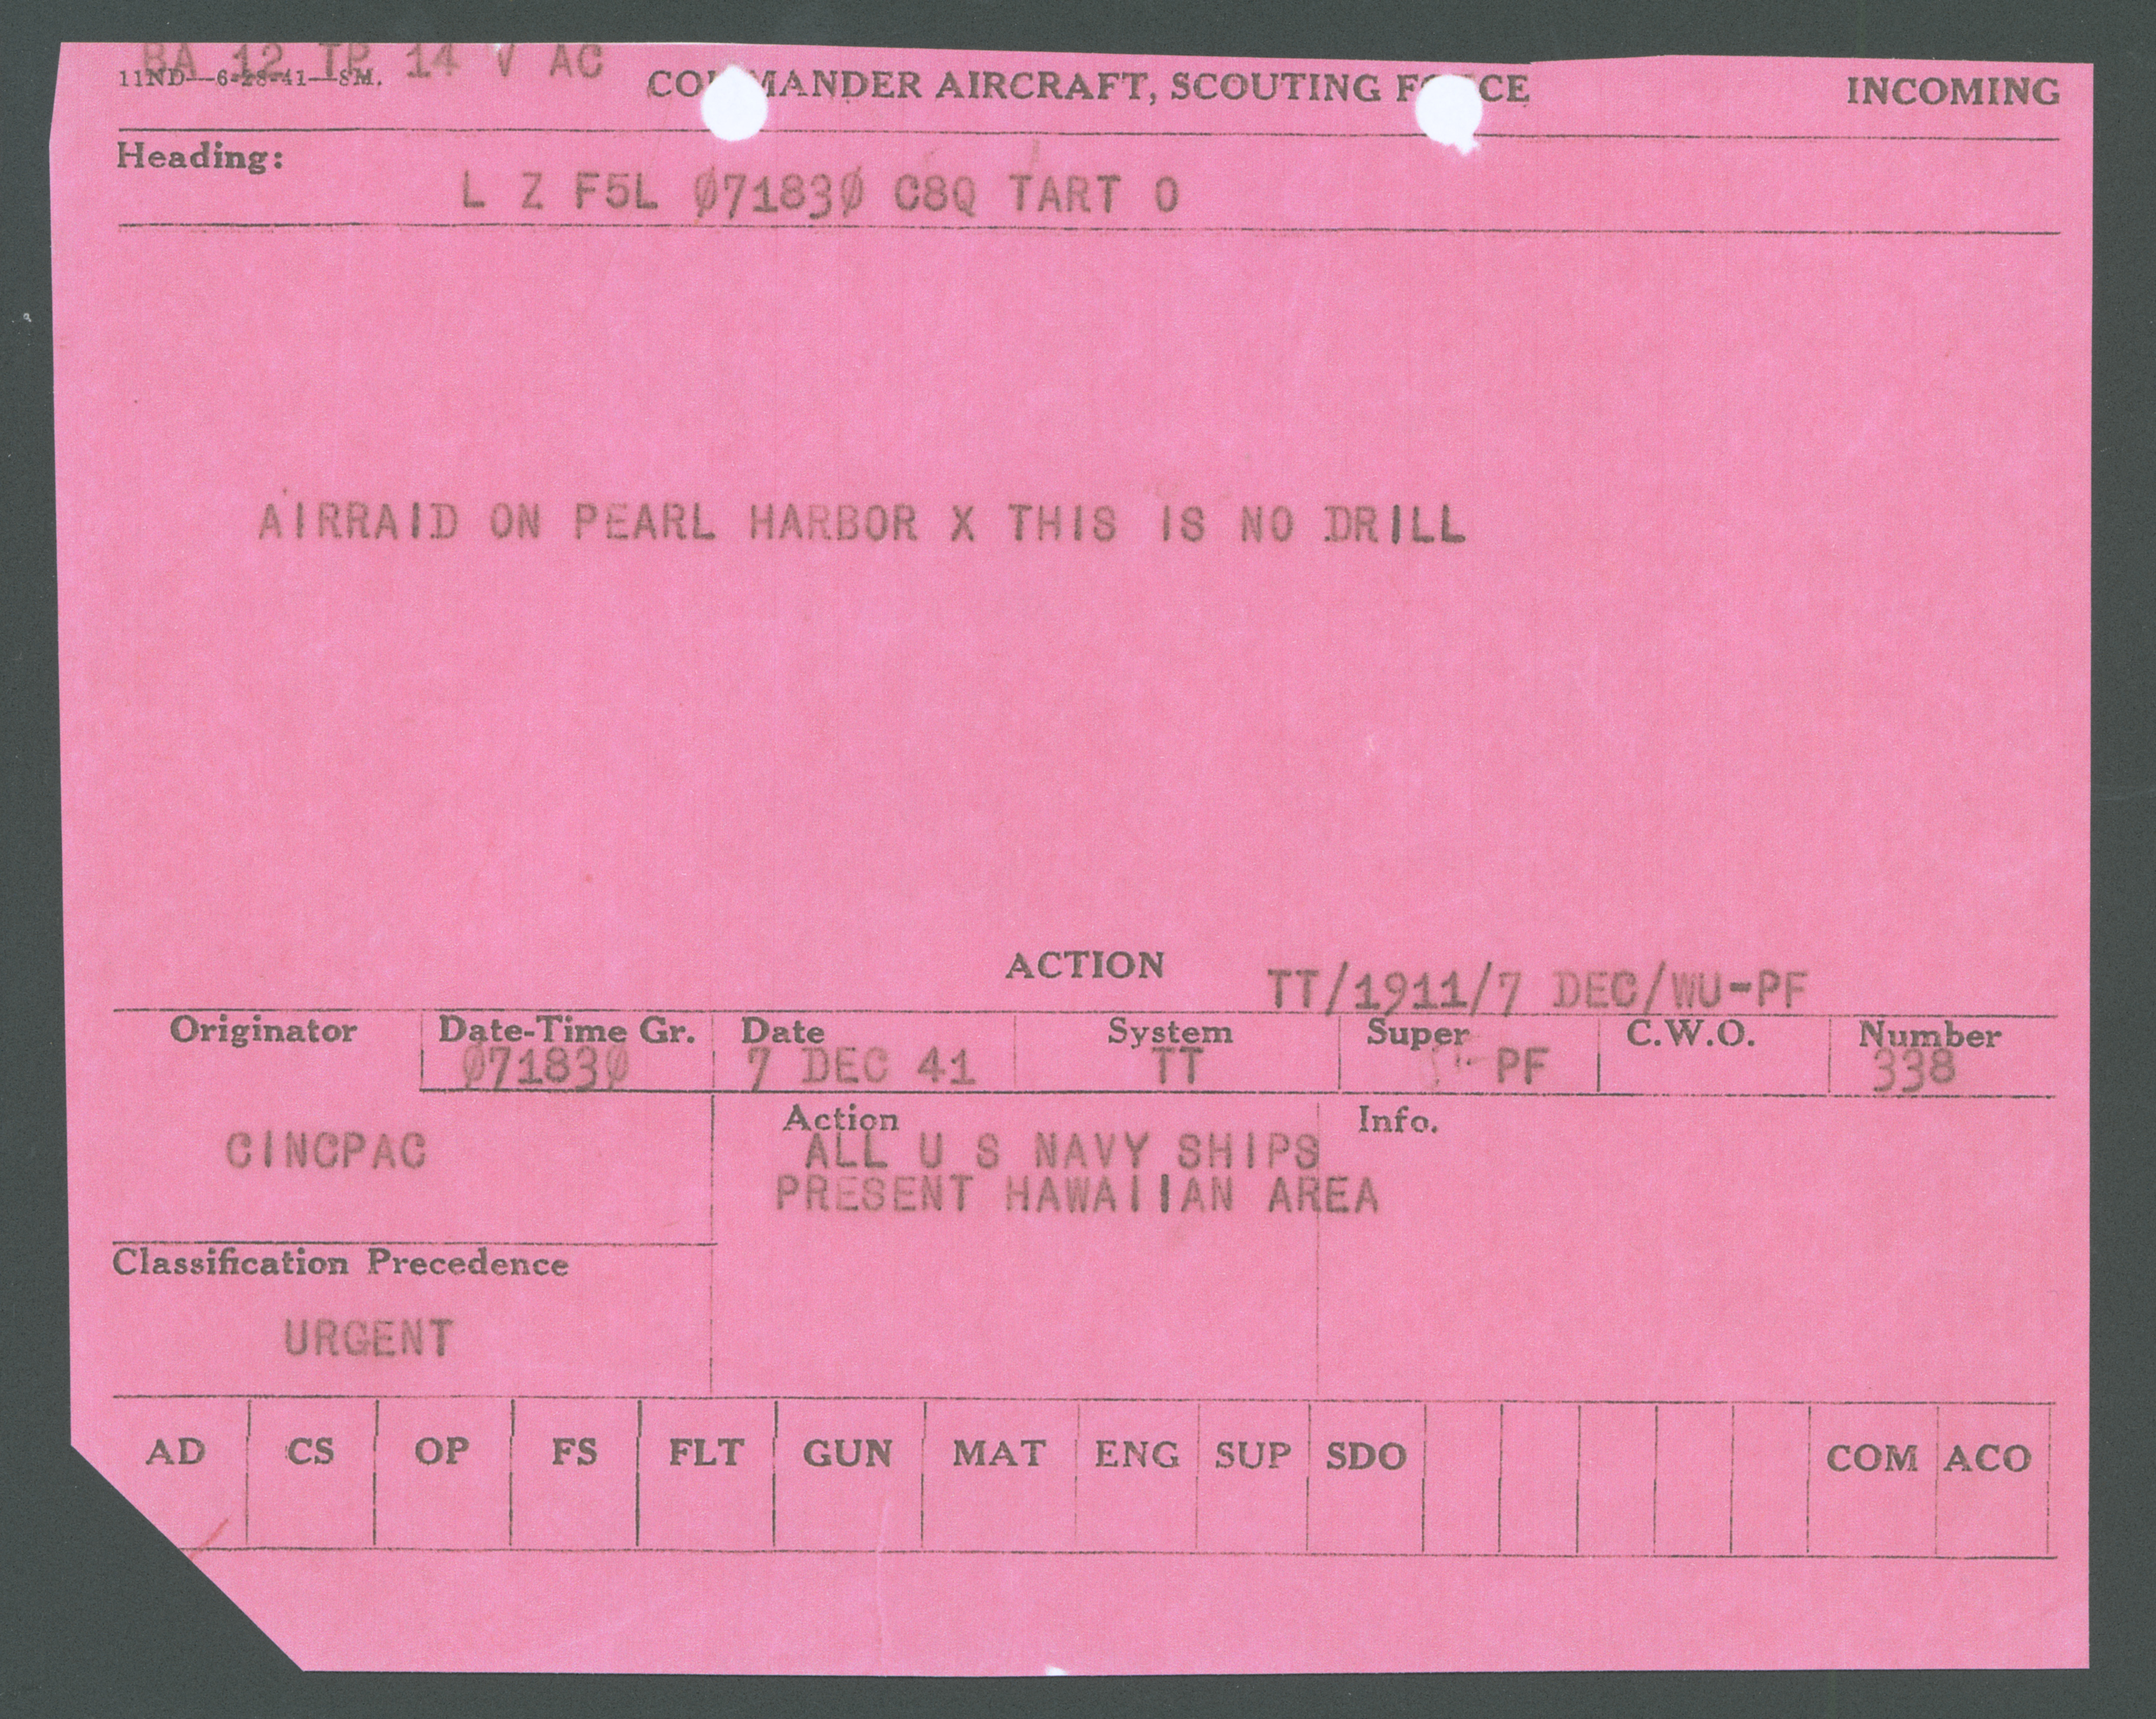 The telegram that first spread the news of Pearl Harbor, from Dec. 7, 1941